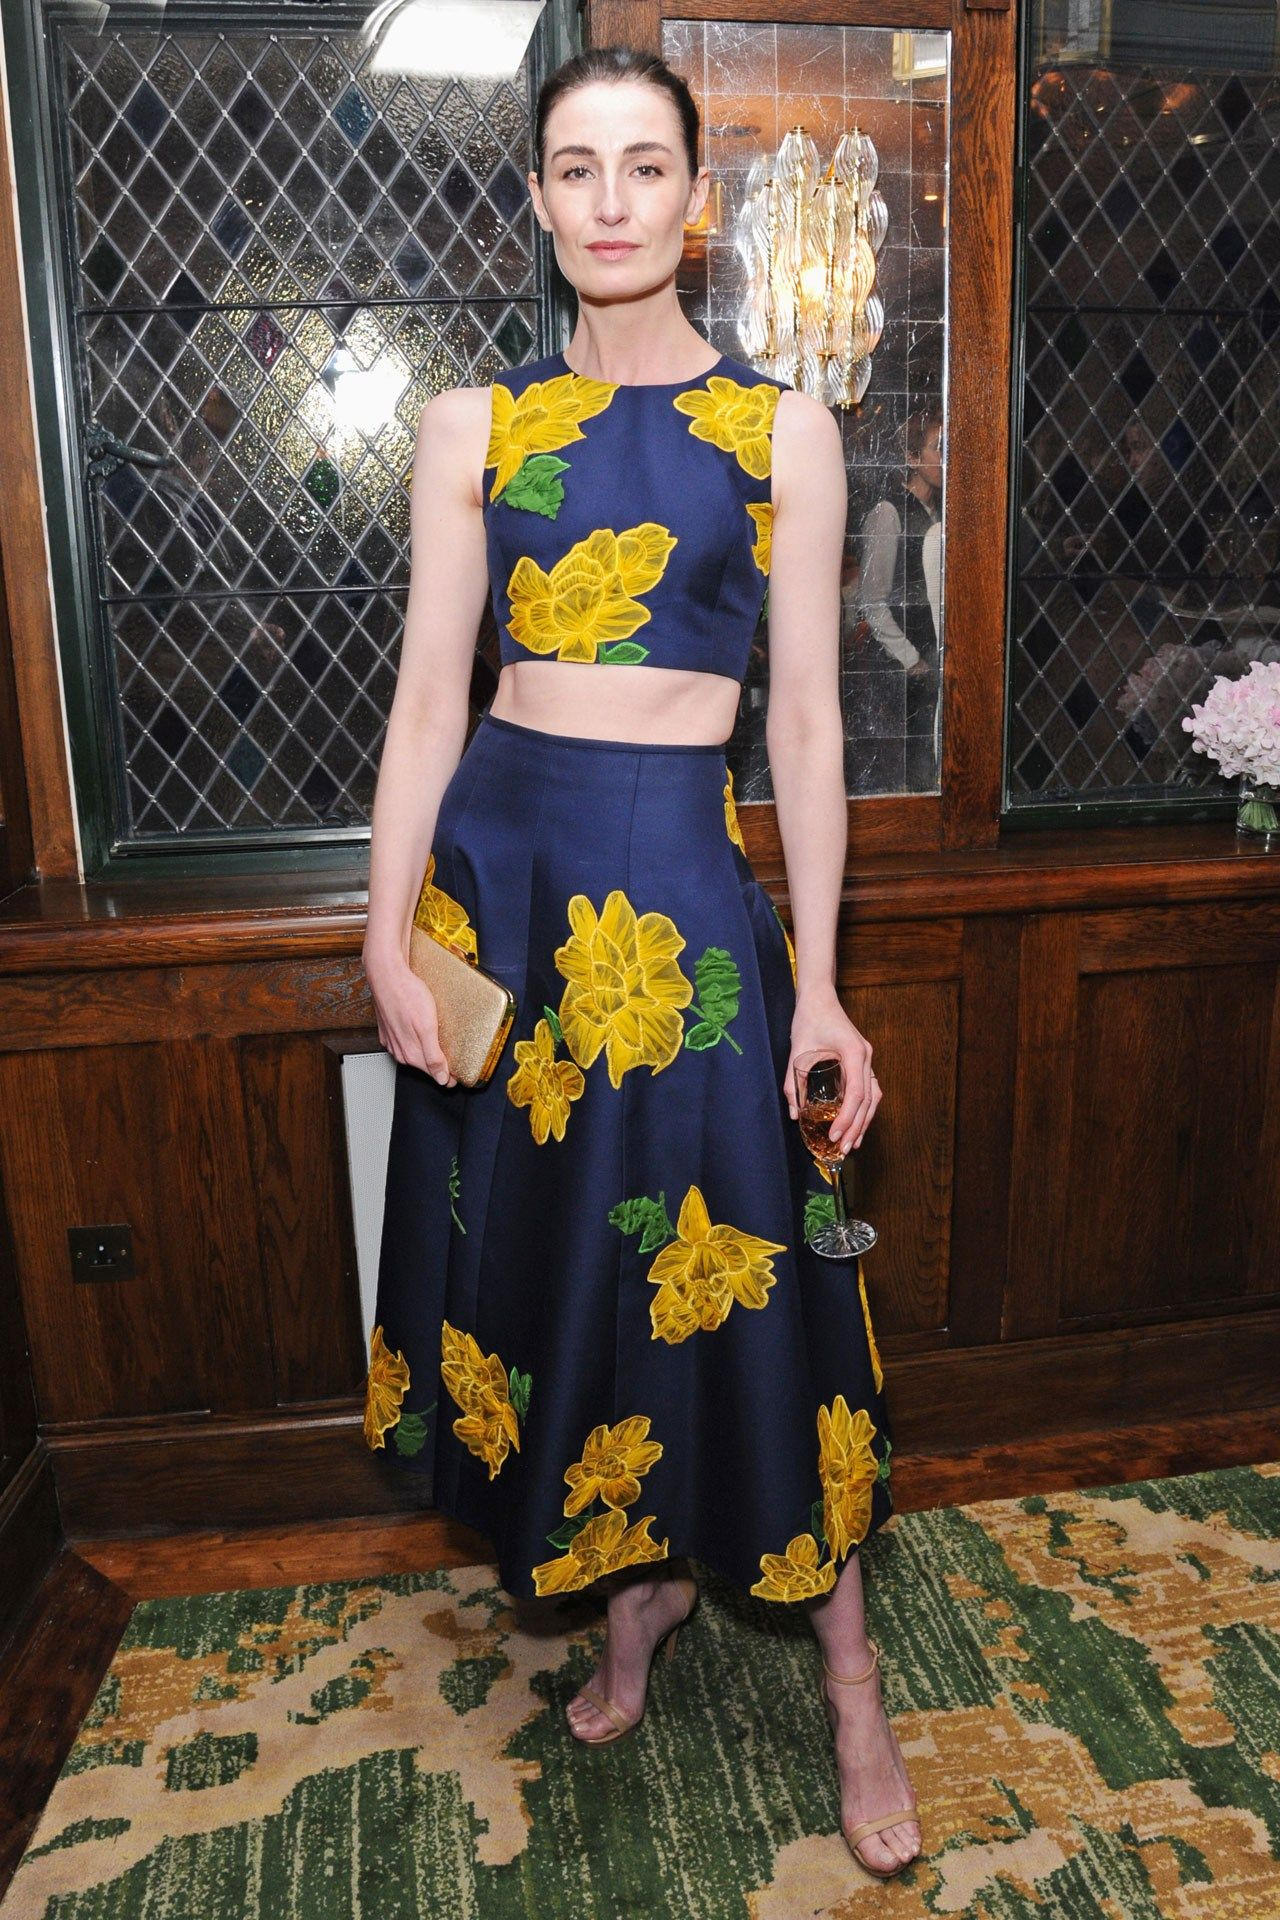 Michael Kors Icons of Style party, London - May 14 2015 - Erin O'Connor